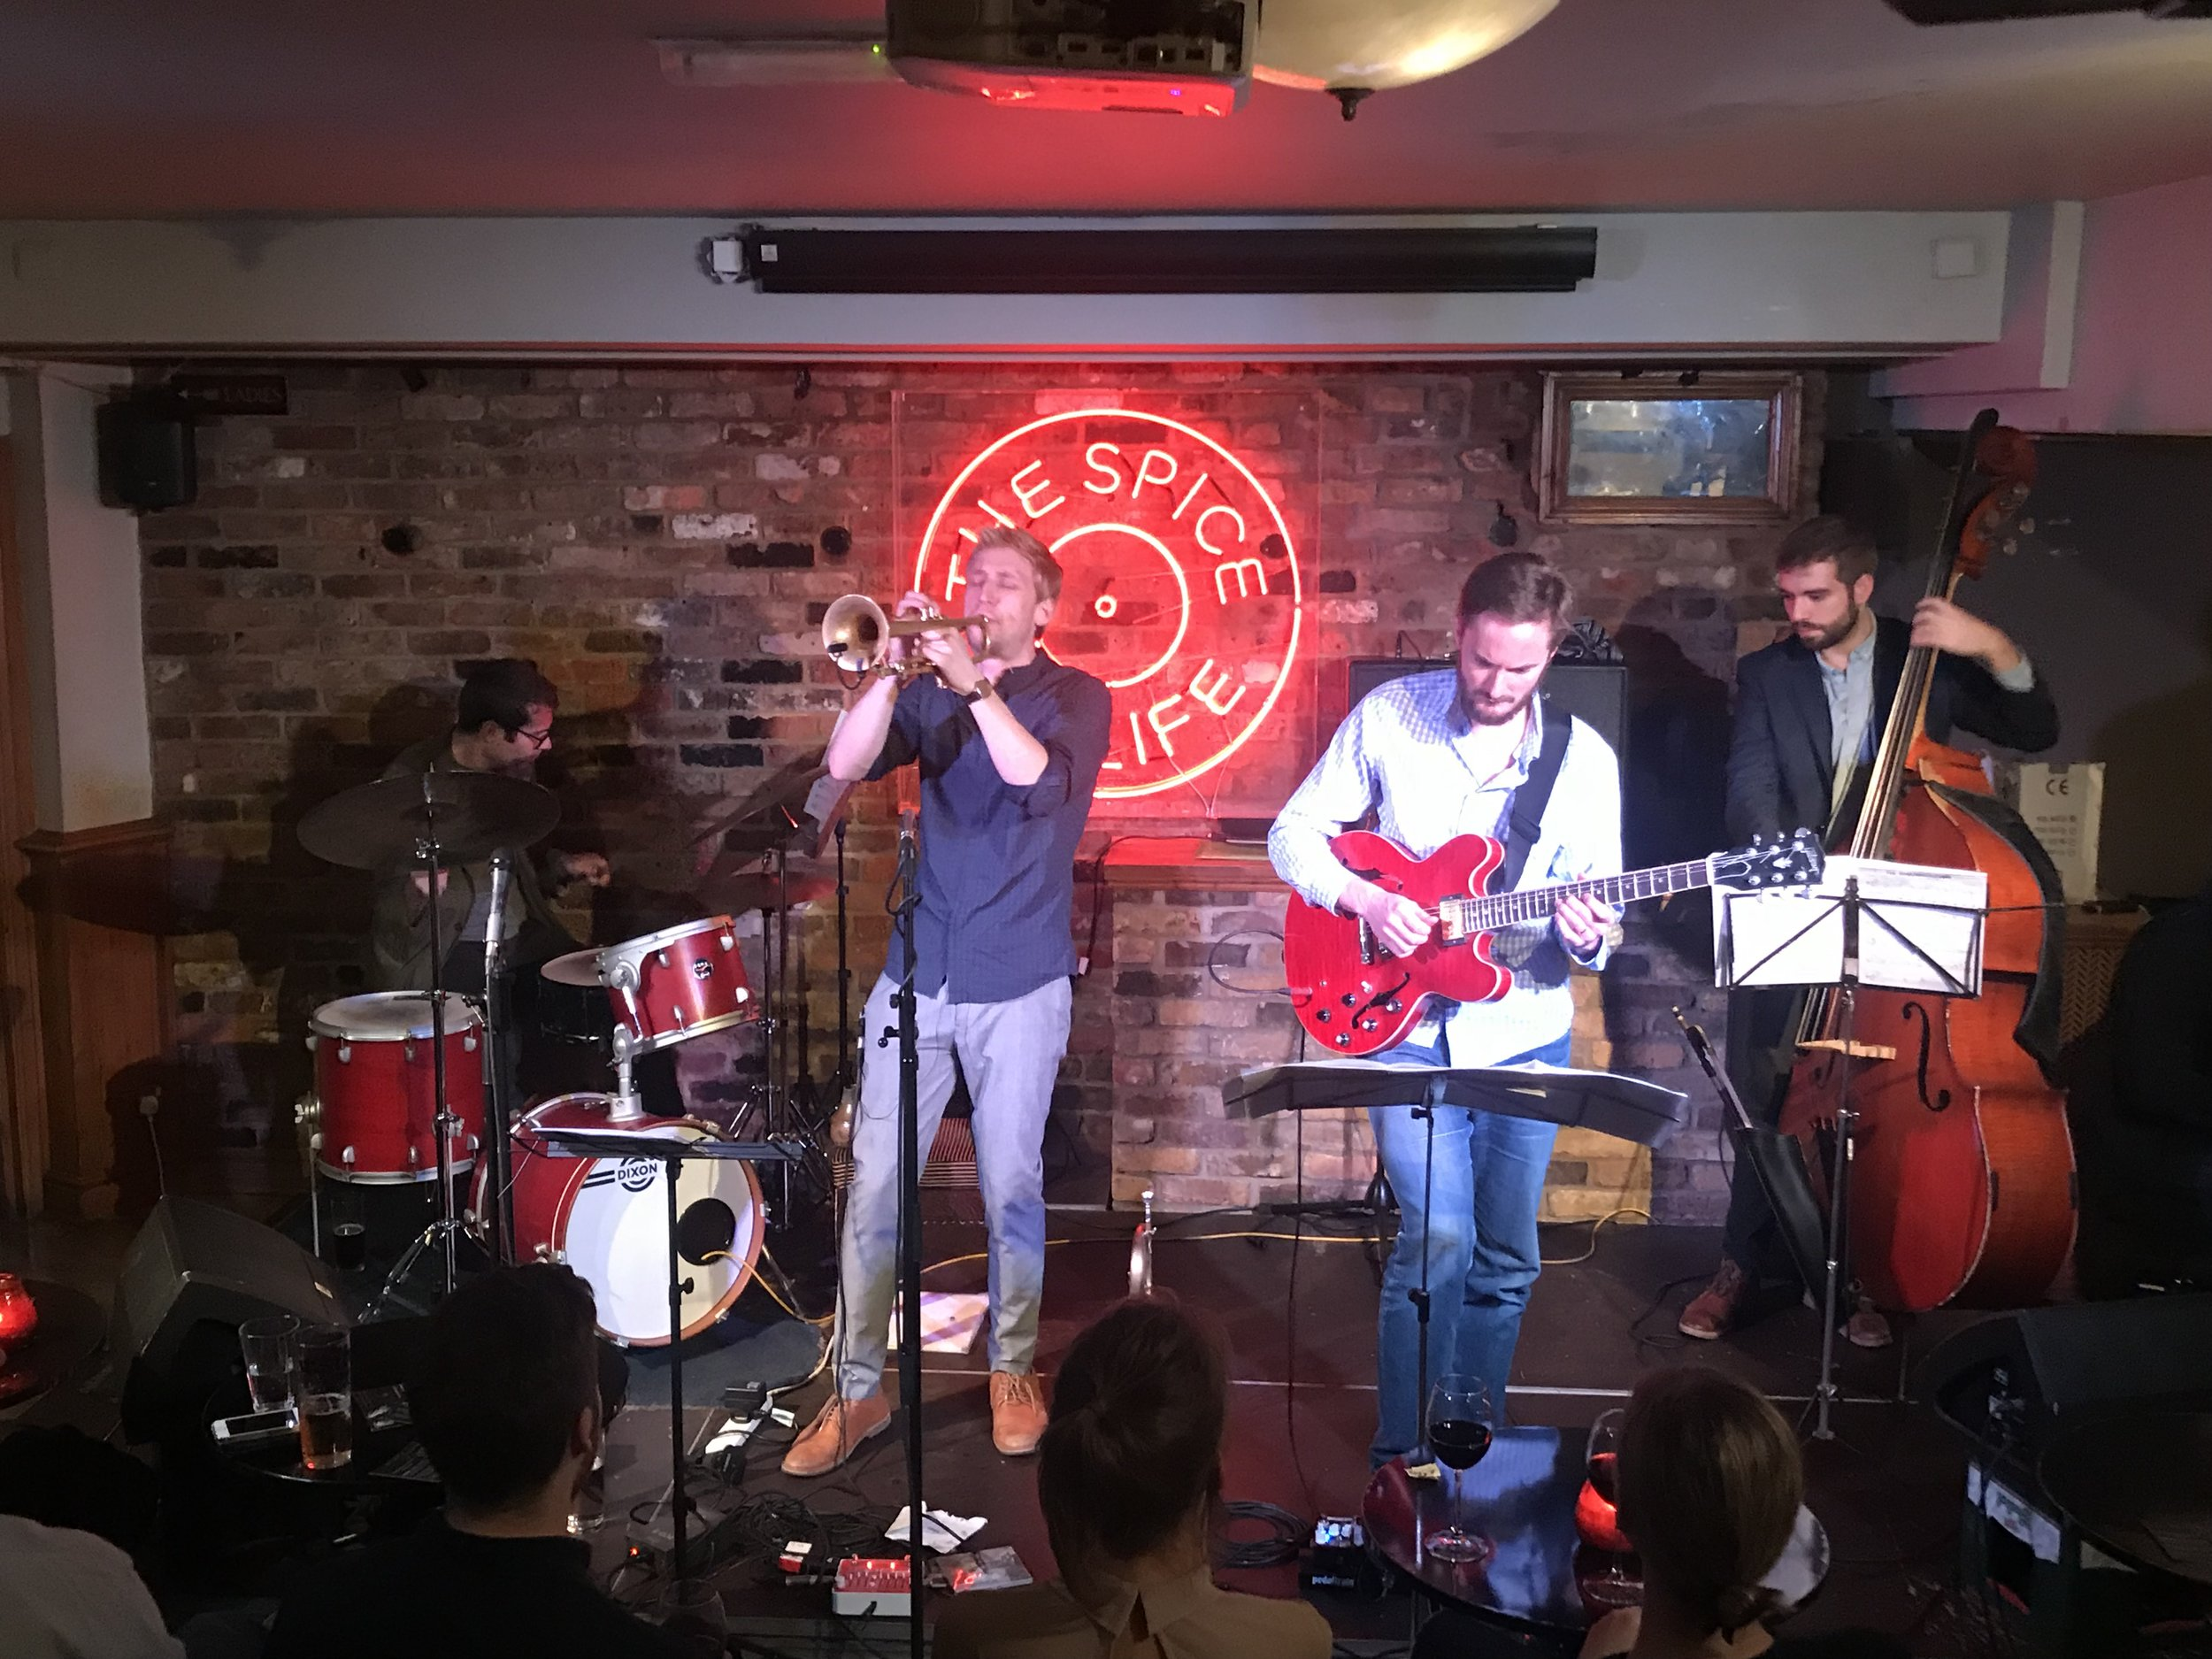 Henry Spencer at Spice of Life, with Ant Law.